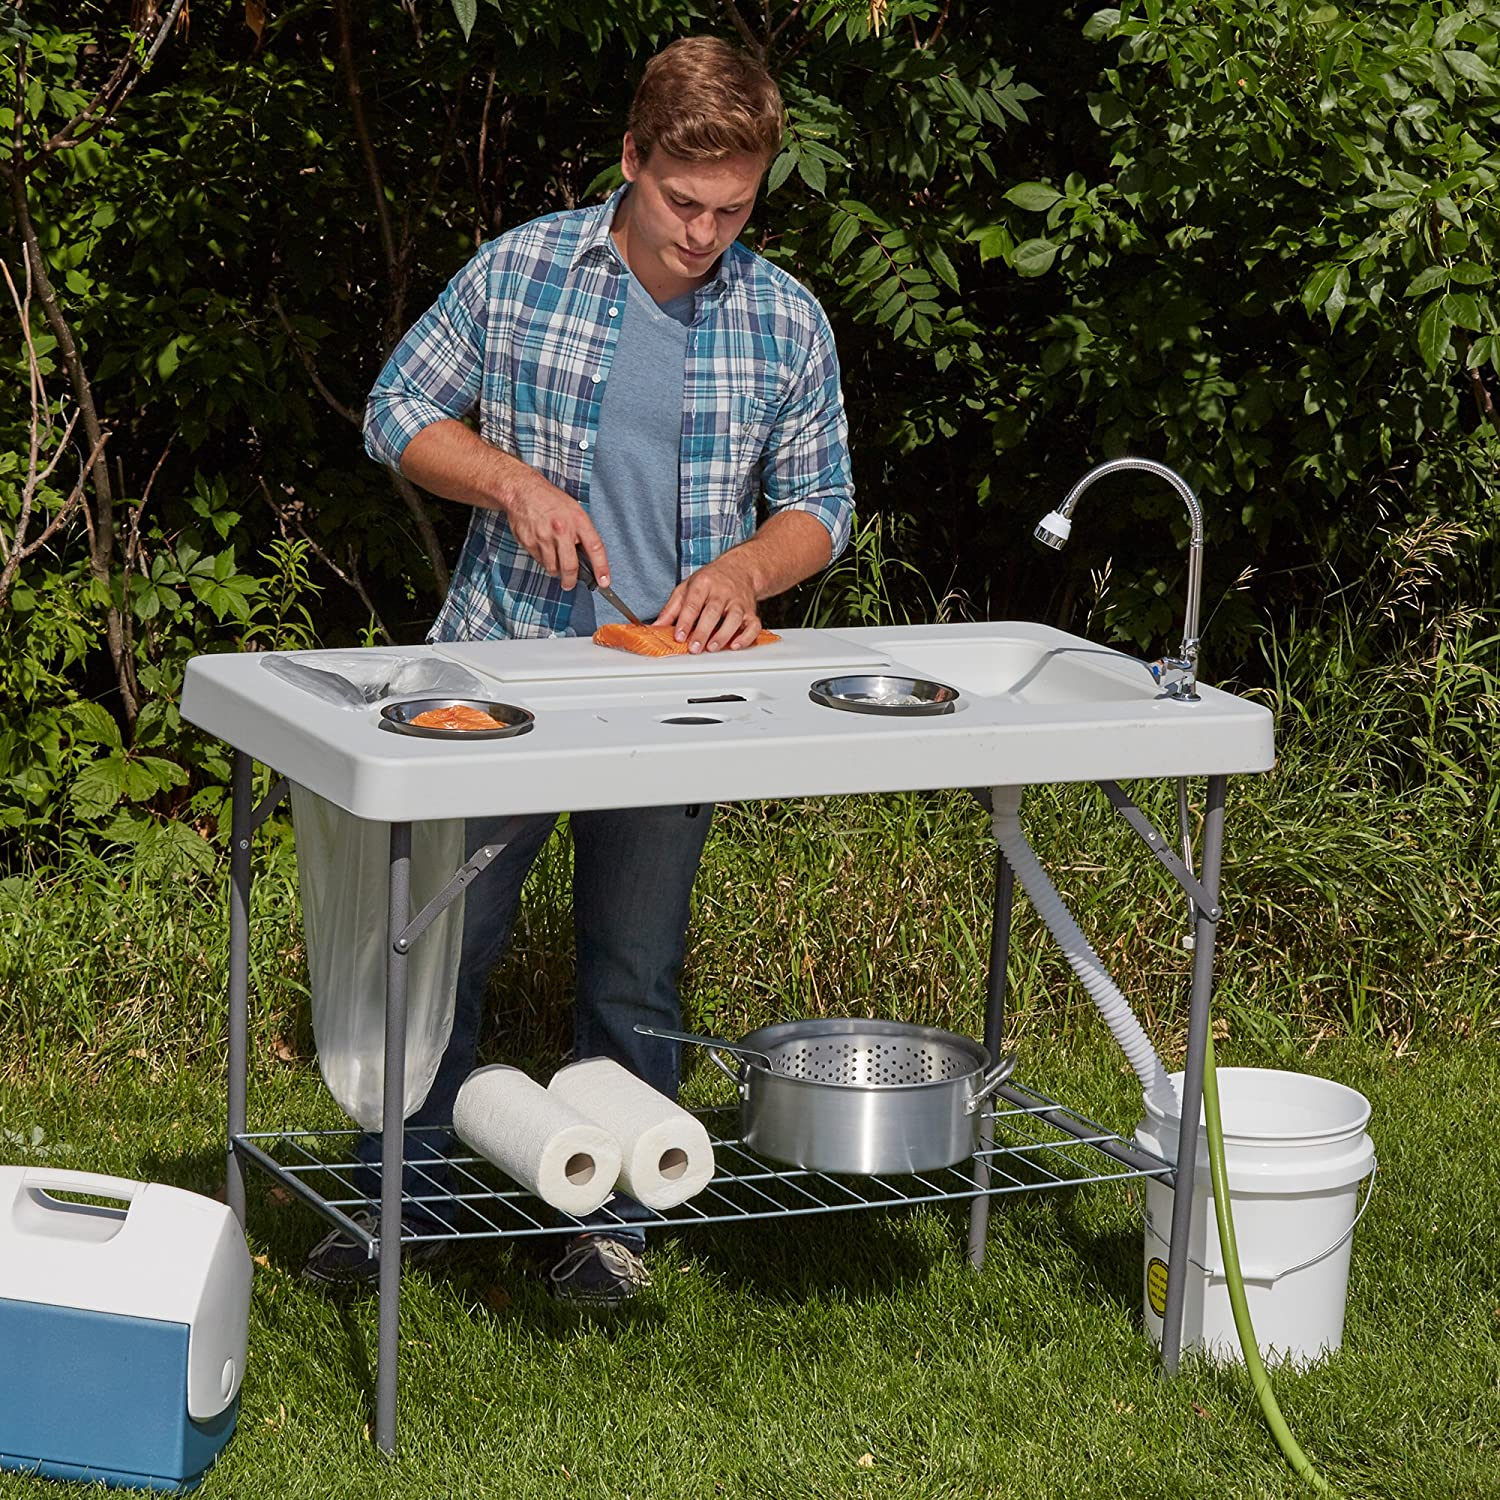 Amazon.com : Deluxe Fish Cleaning Camp Table with Flexible Faucet ...